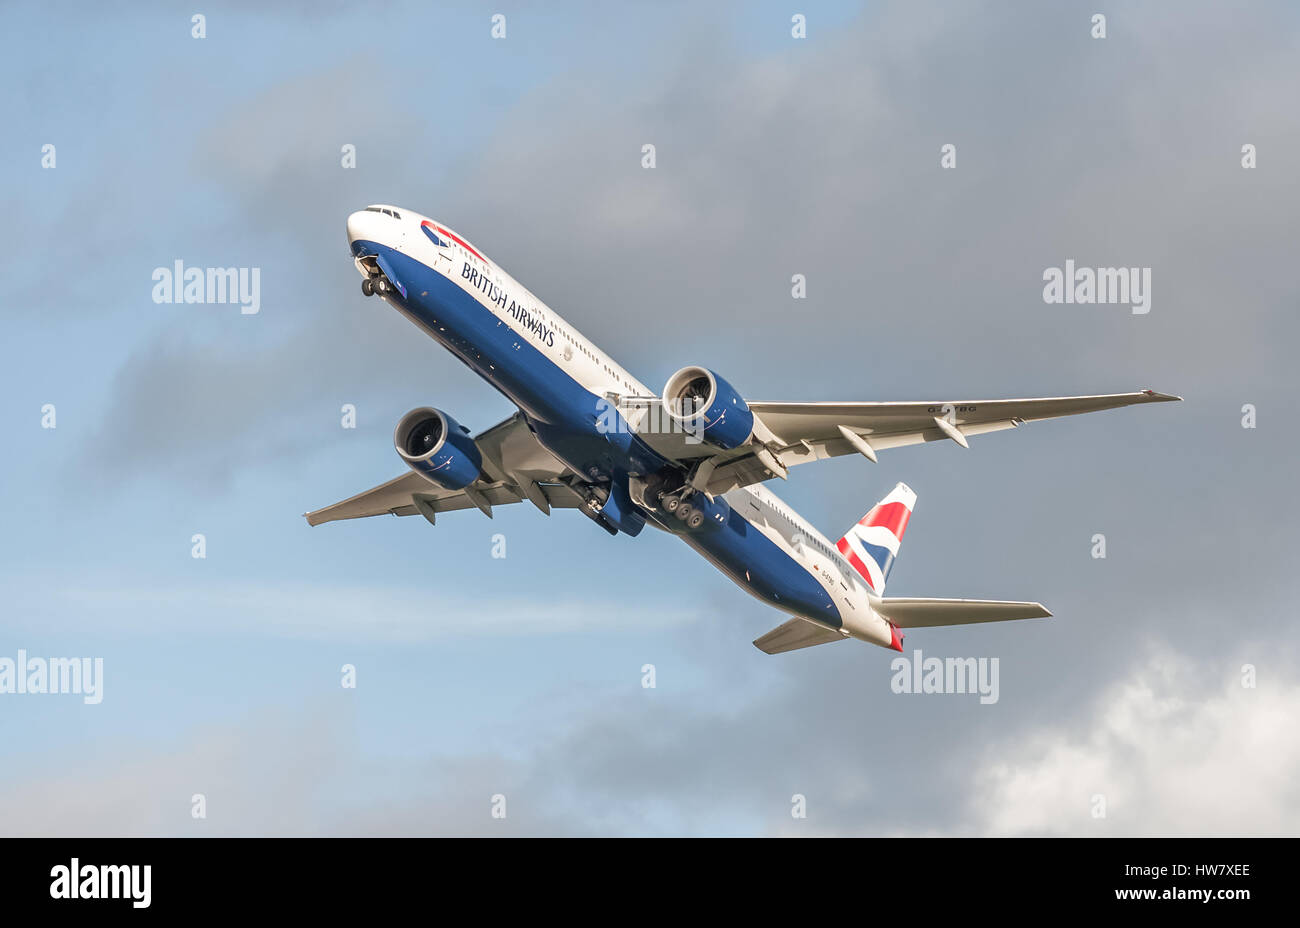 British Airways Boeing 777 retracting its undercarriage on take-off from Heathrow Airport, London, UK - Stock Image